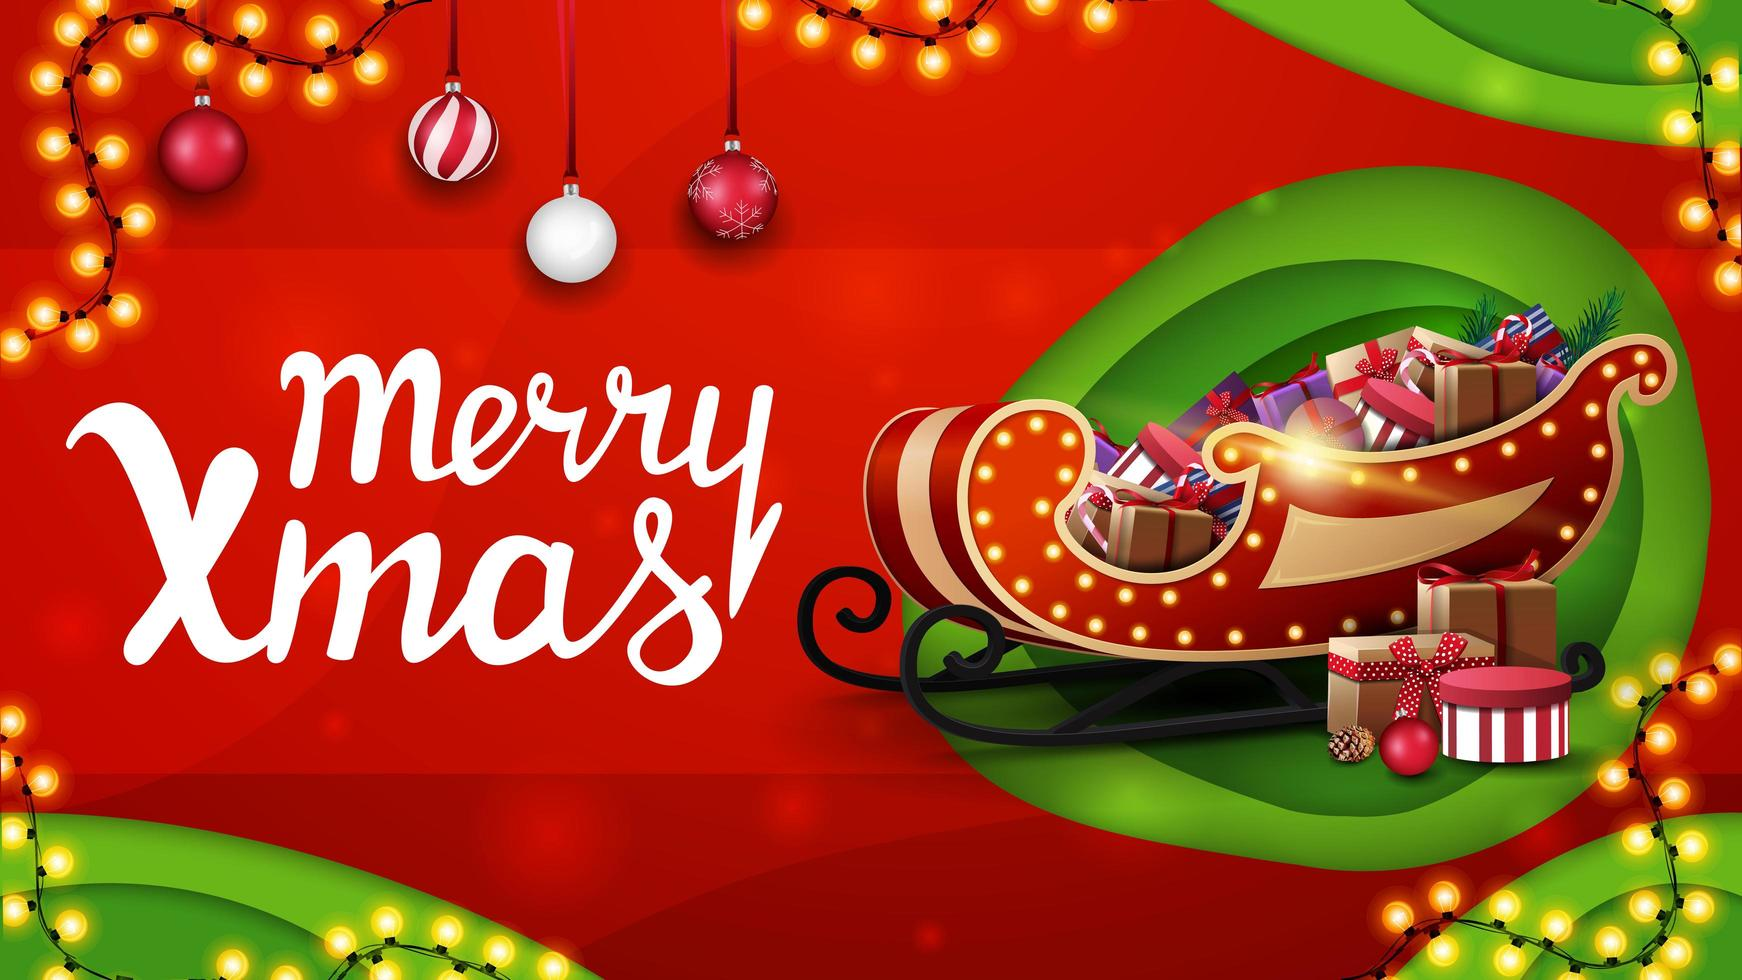 Merry Christmas, red and green discount banner in paper cut style with garlands, Christmas balls and Santa Sleigh with presents vector